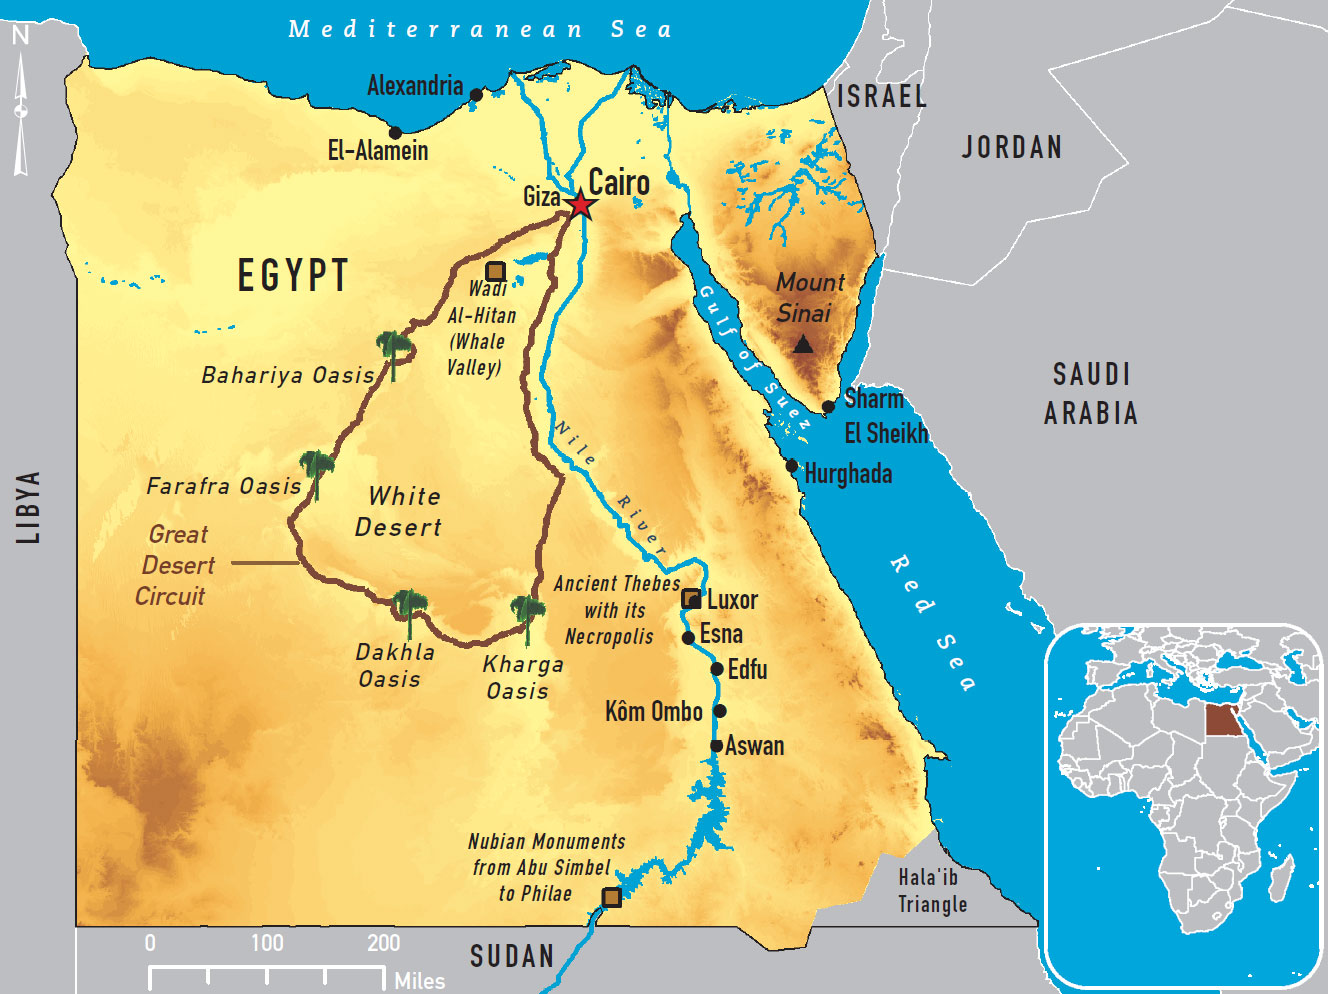 an analysis of the river nile in the egypt Navigating peace no 4 january 2007 water, conflict, and cooperation: lessons from the nile river basin egypt must consent to other nations' use of the.